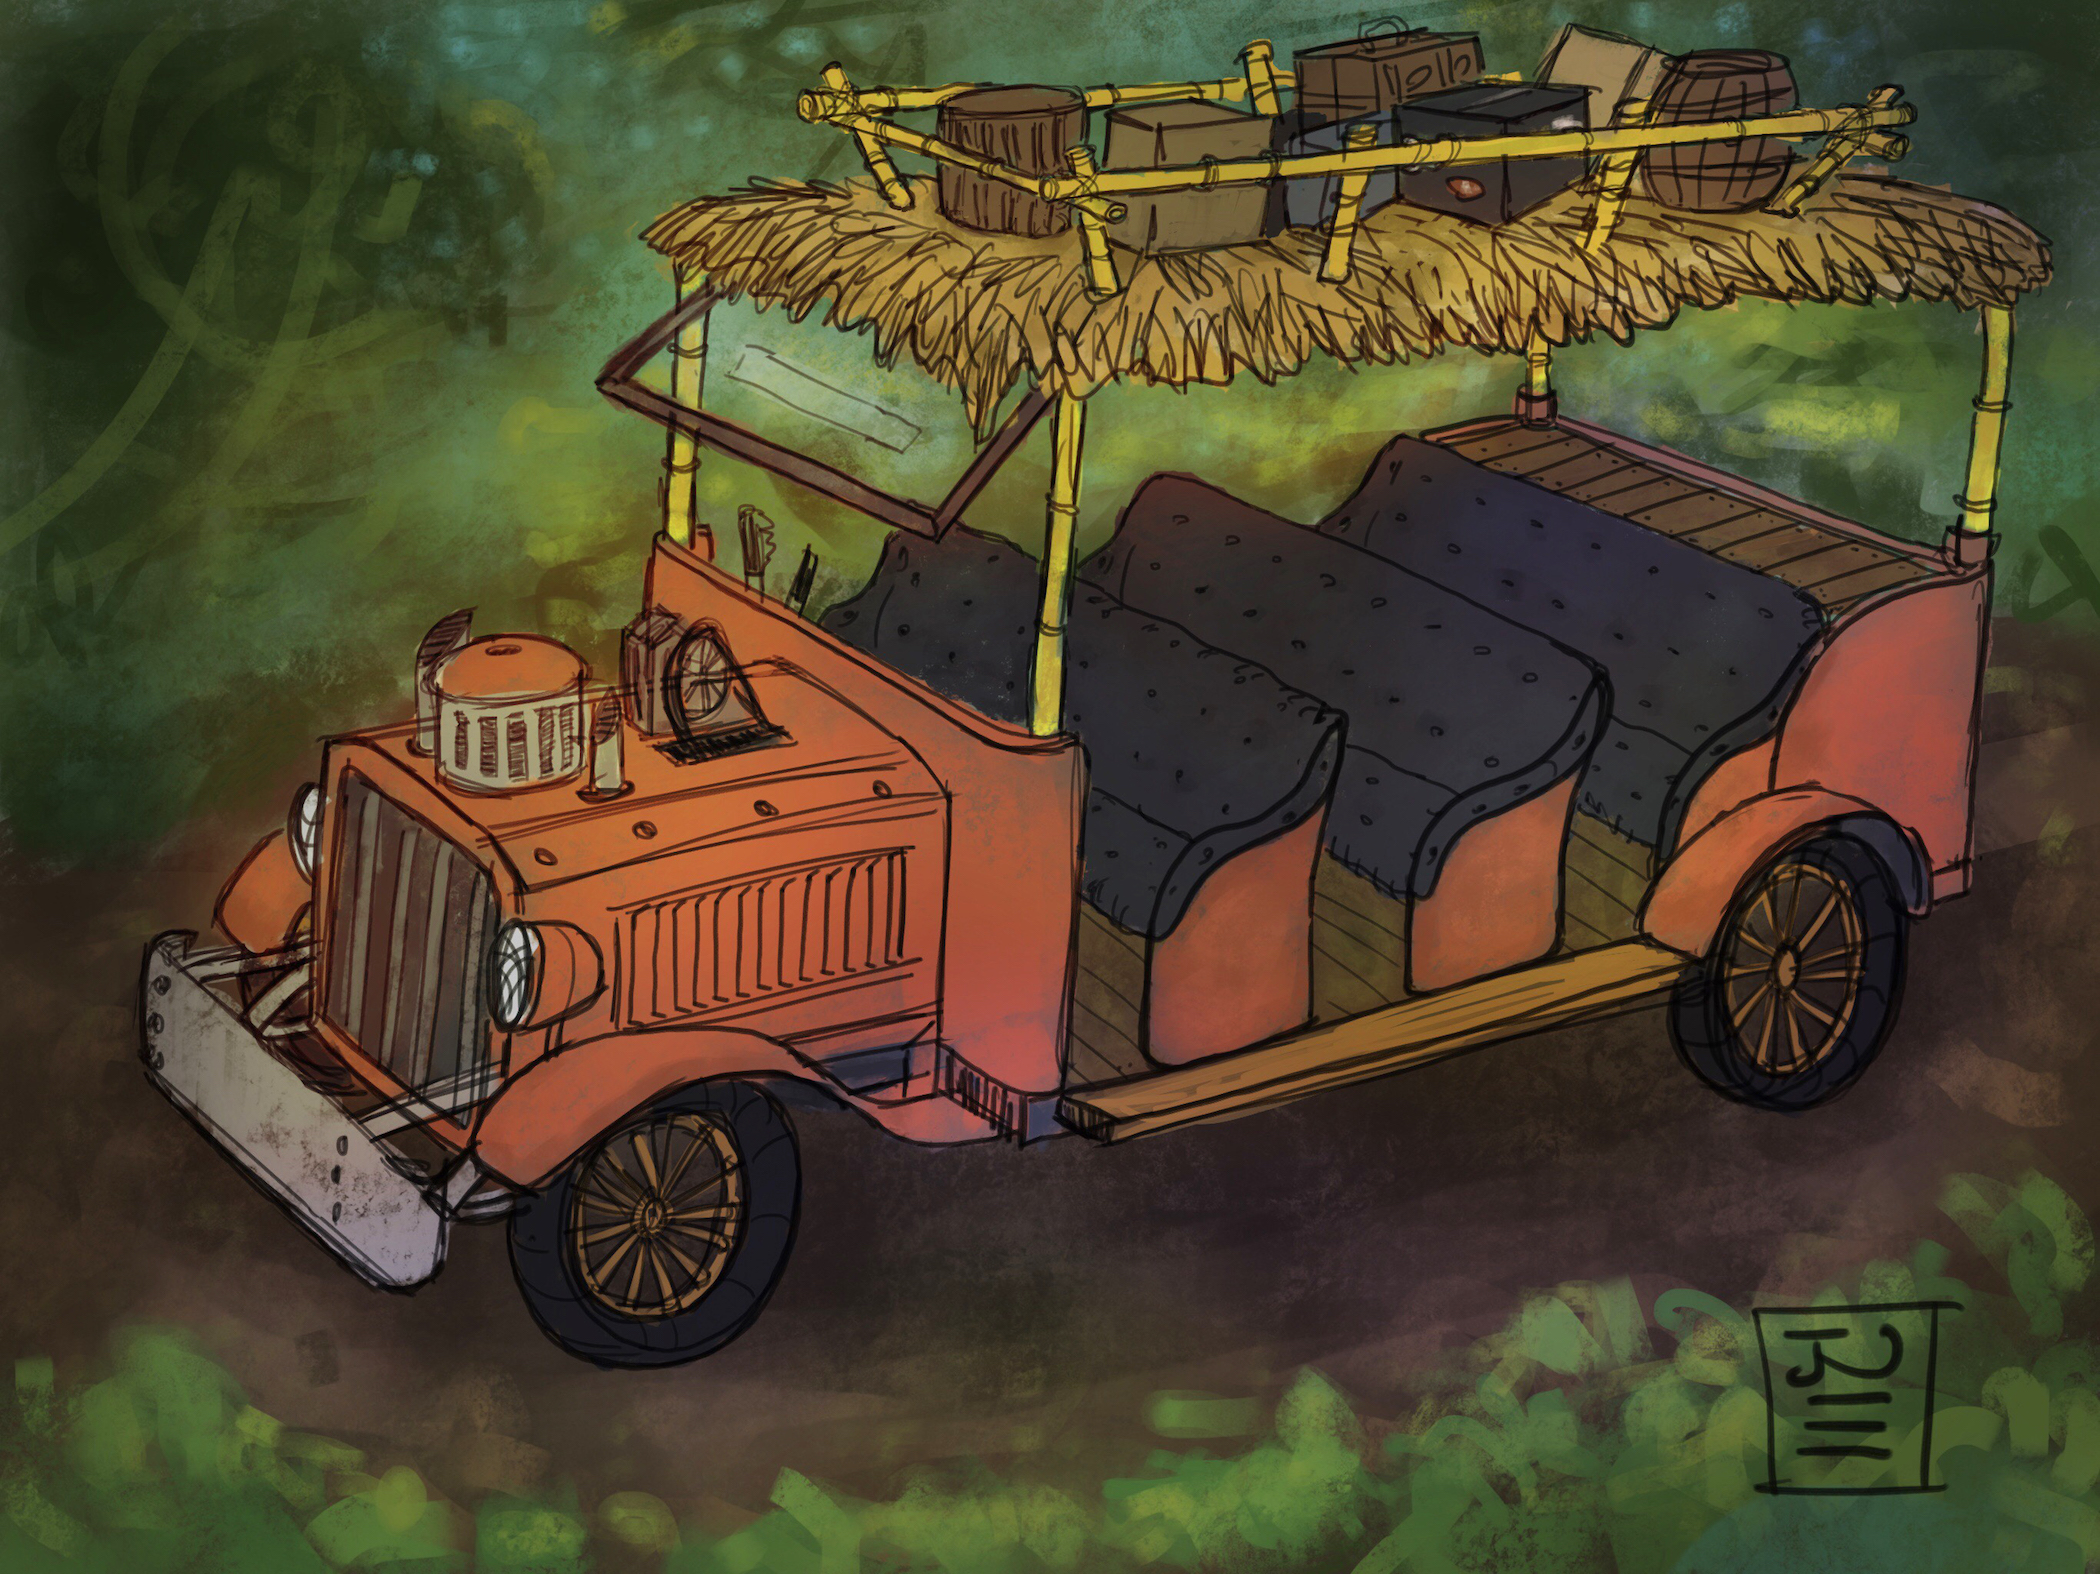 Tarzan Ride Concept: Vehicle Design